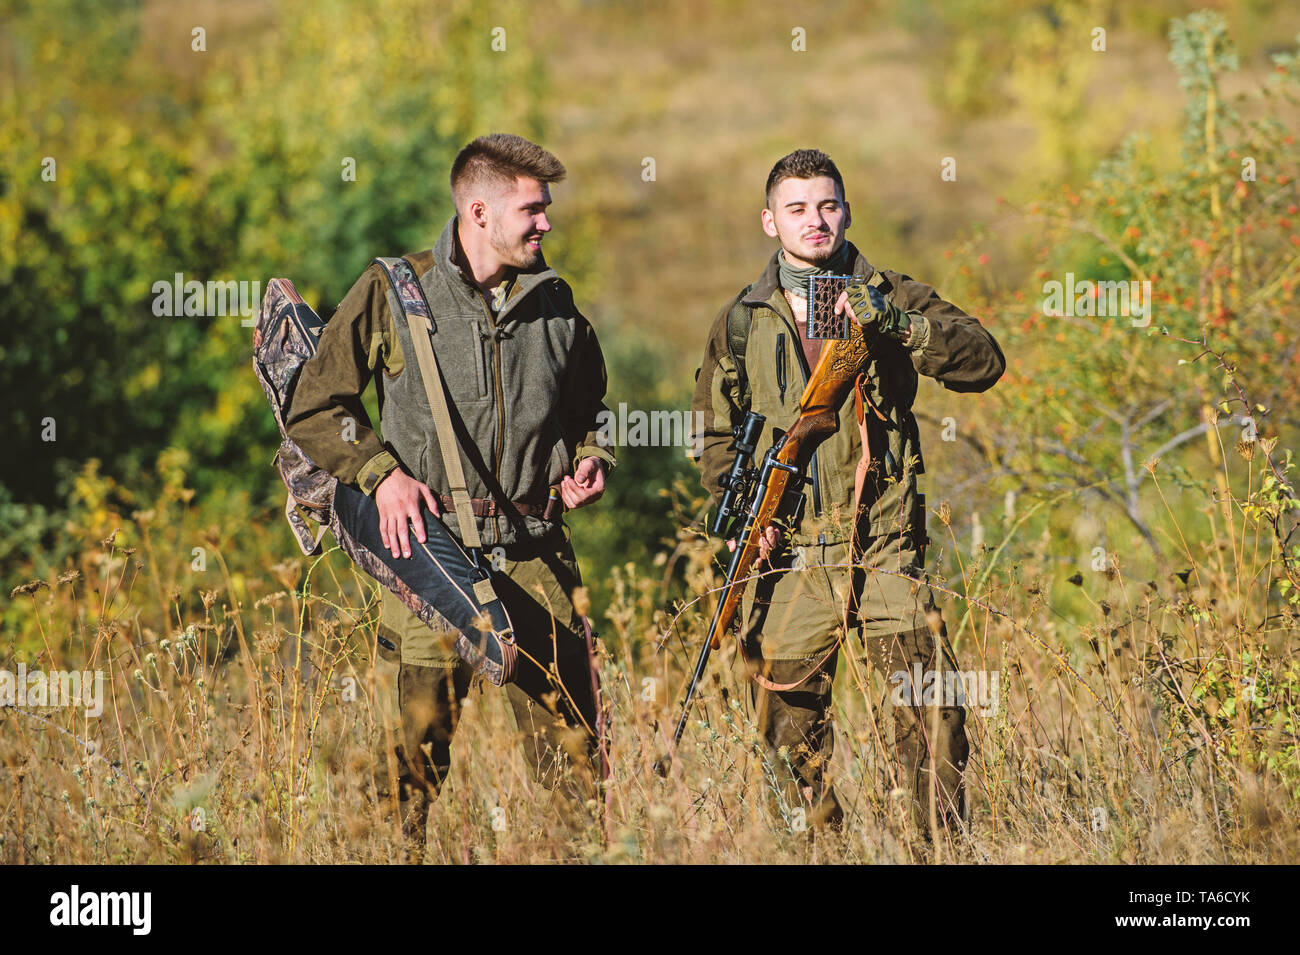 Army forces. Camouflage. Military uniform. Hunting skills and weapon equipment. How turn hunting into hobby. Man hunters with rifle gun. Boot camp. Friendship of men hunters. Rest for real men . - Stock Image